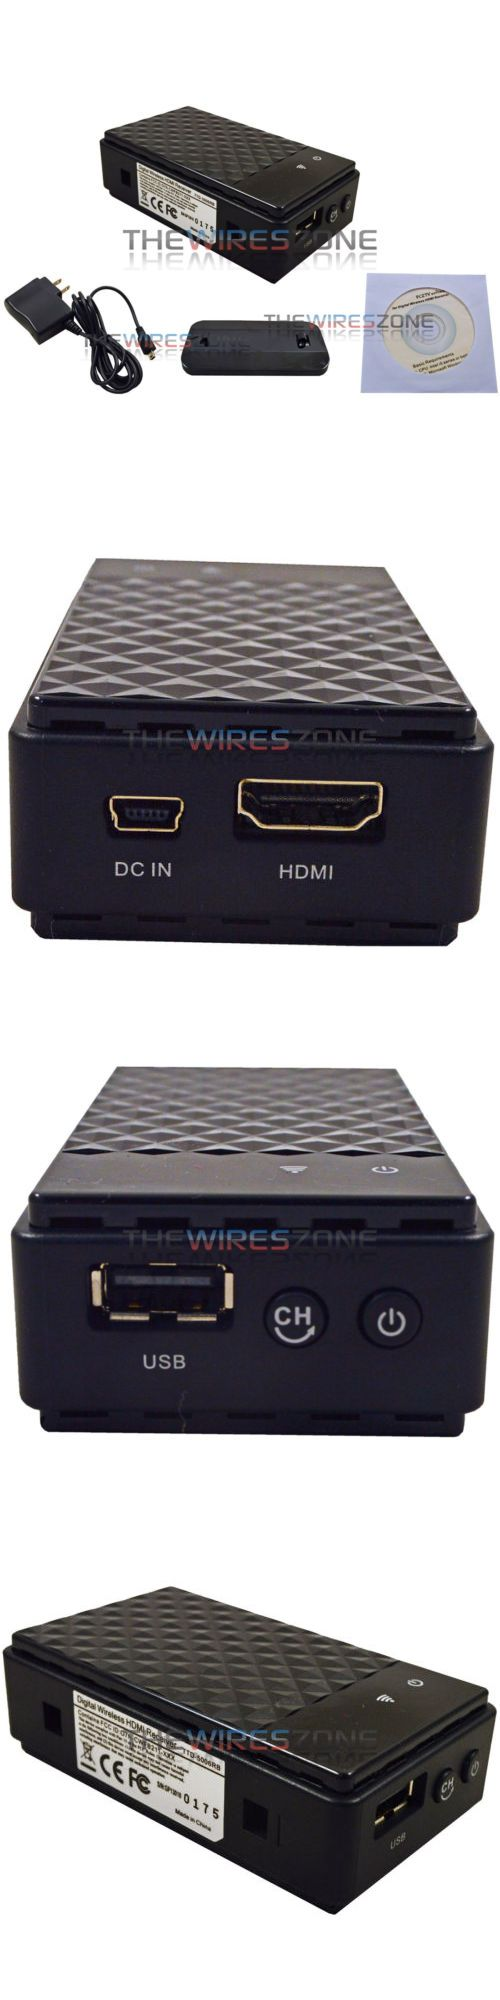 Audio Video Transmitters: 1080P High Definition Hd Pc Or Laptop To Tv Television Hdmi Wireless Receiver -> BUY IT NOW ONLY: $79.95 on eBay!